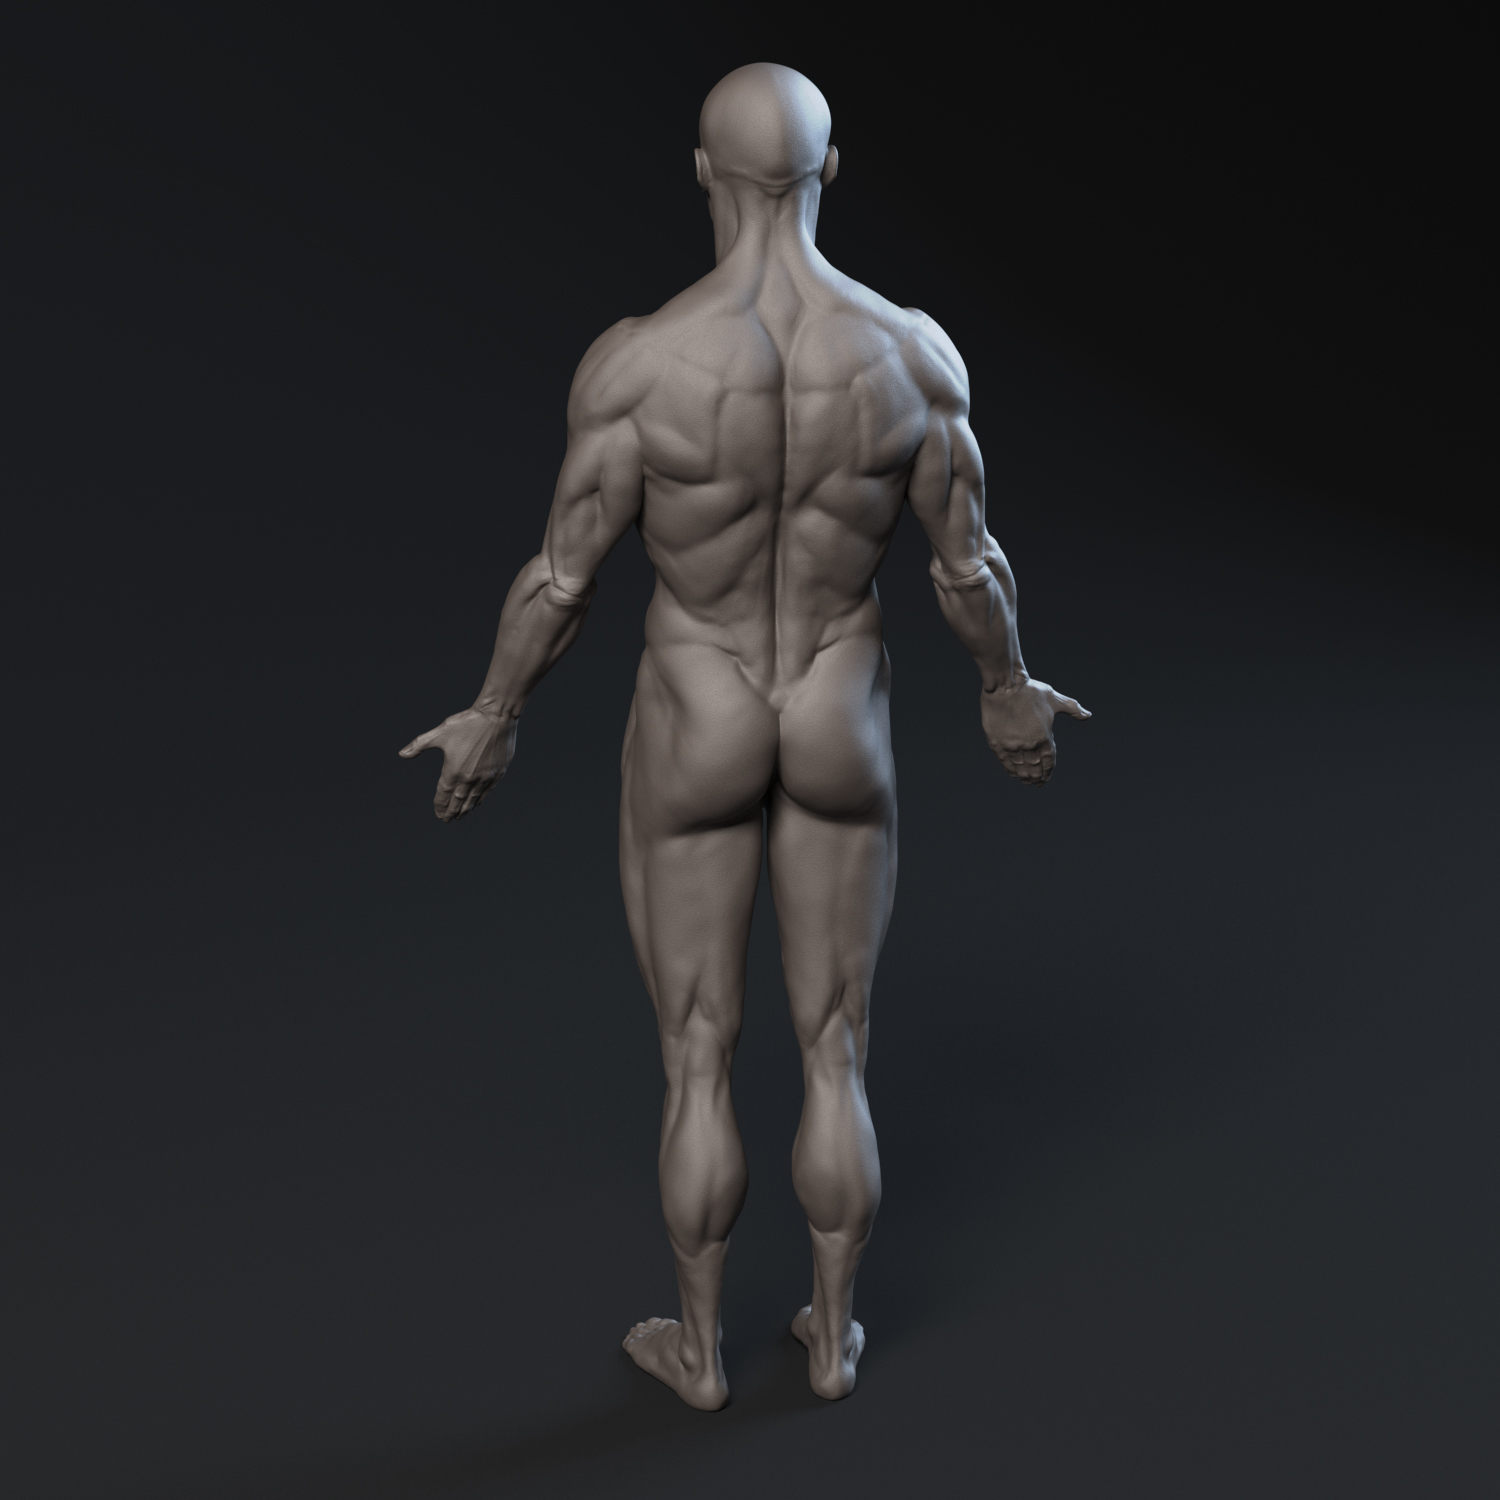 Black_Male_Body5.jpg